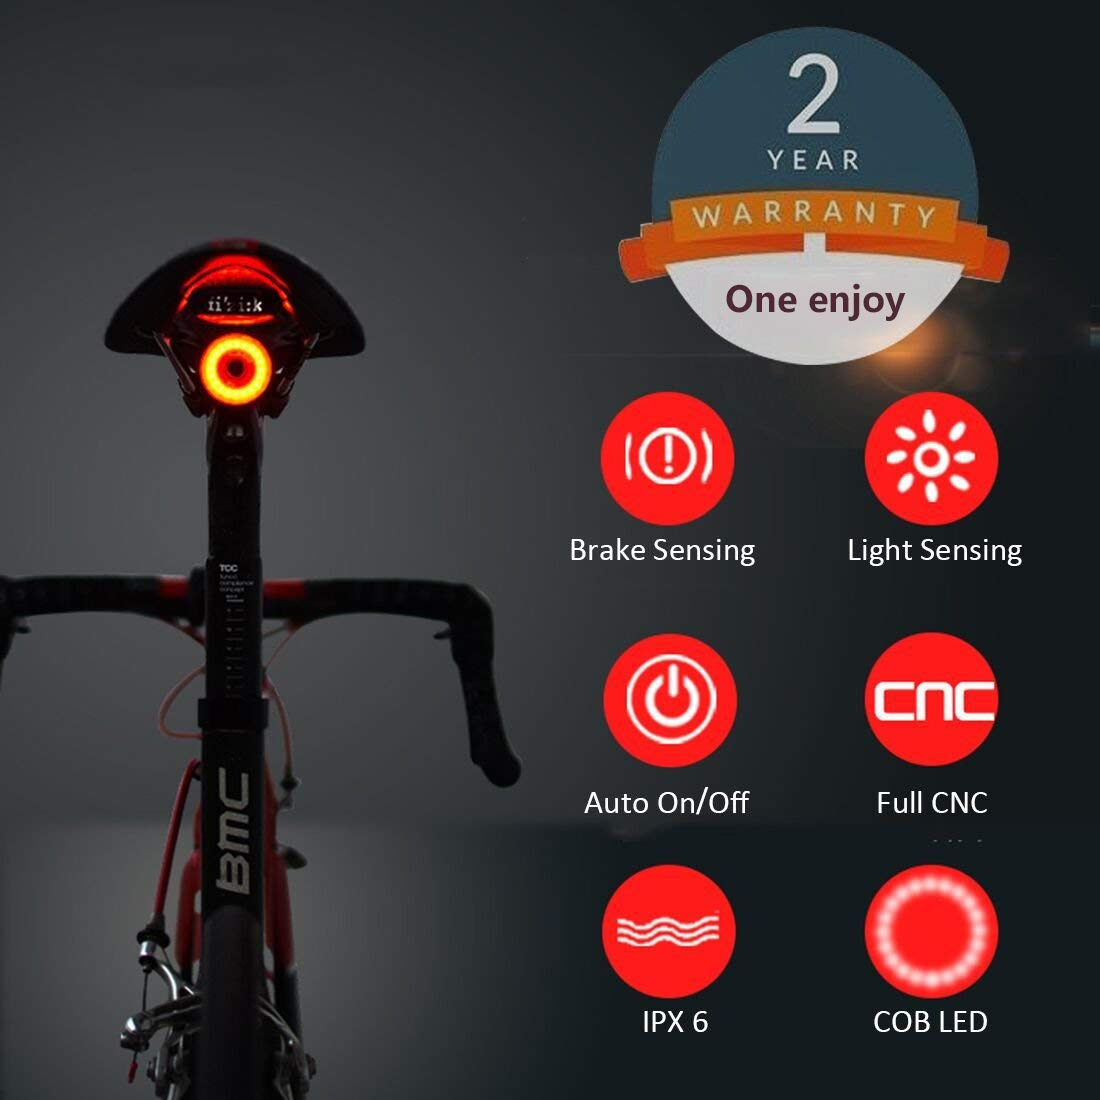 Bike Tail Light Ultra Bright, Bike Light Rechargeable Auto on-off, IPX6 Waterproof LED Bicycle lights,High Intensity Rear LED Accessories Fits On Any Road Bikes, Helmets, Easy To Install